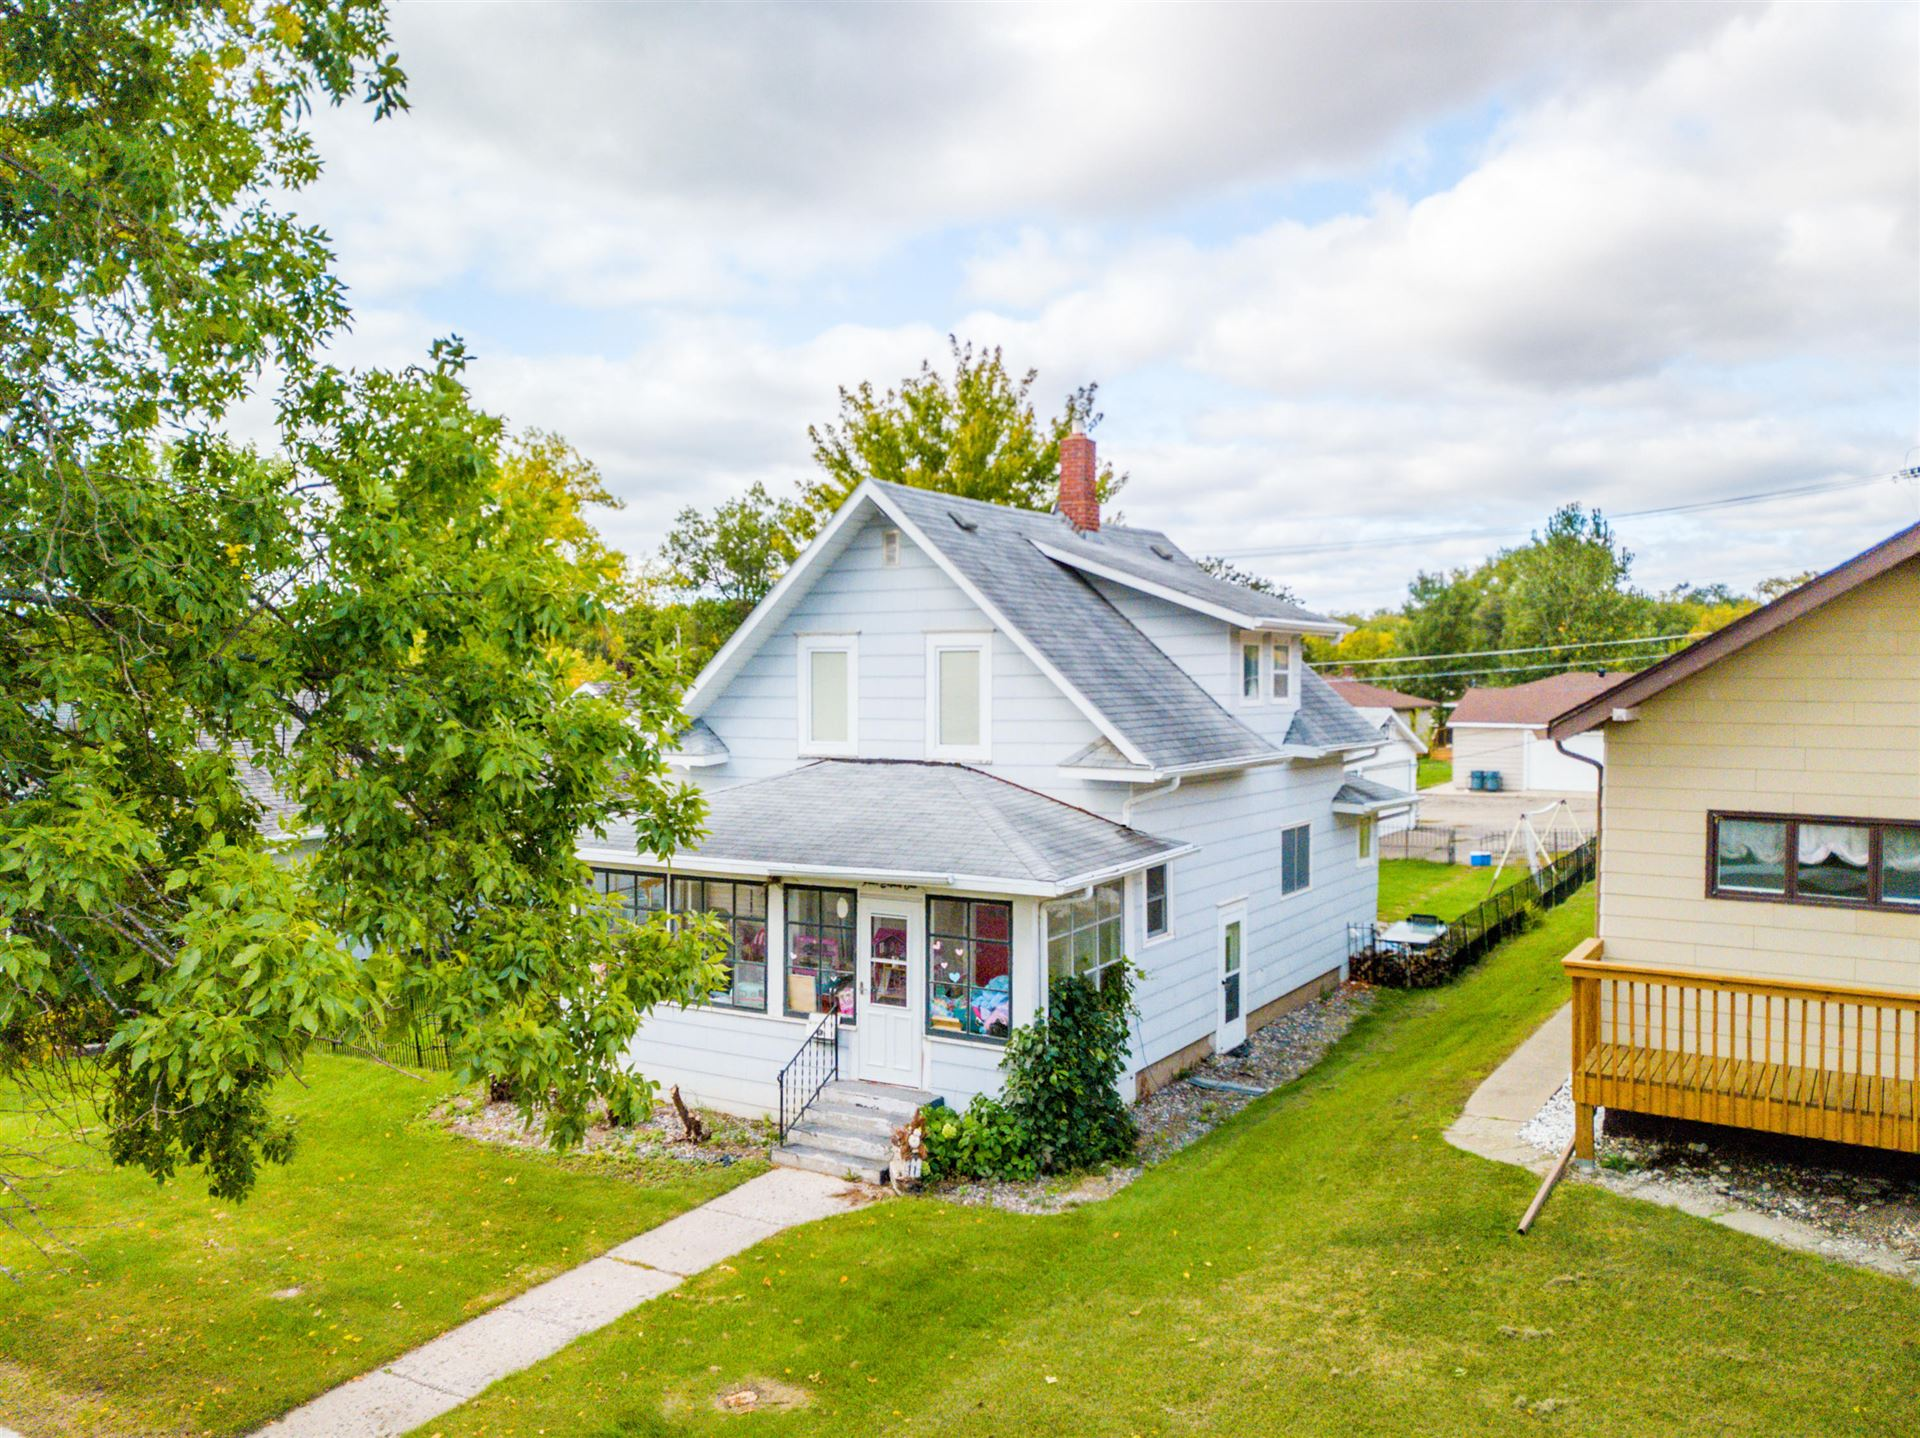 Photo for 481 5th Avenue NW, Valley City, ND 58072 (MLS # 20-617)